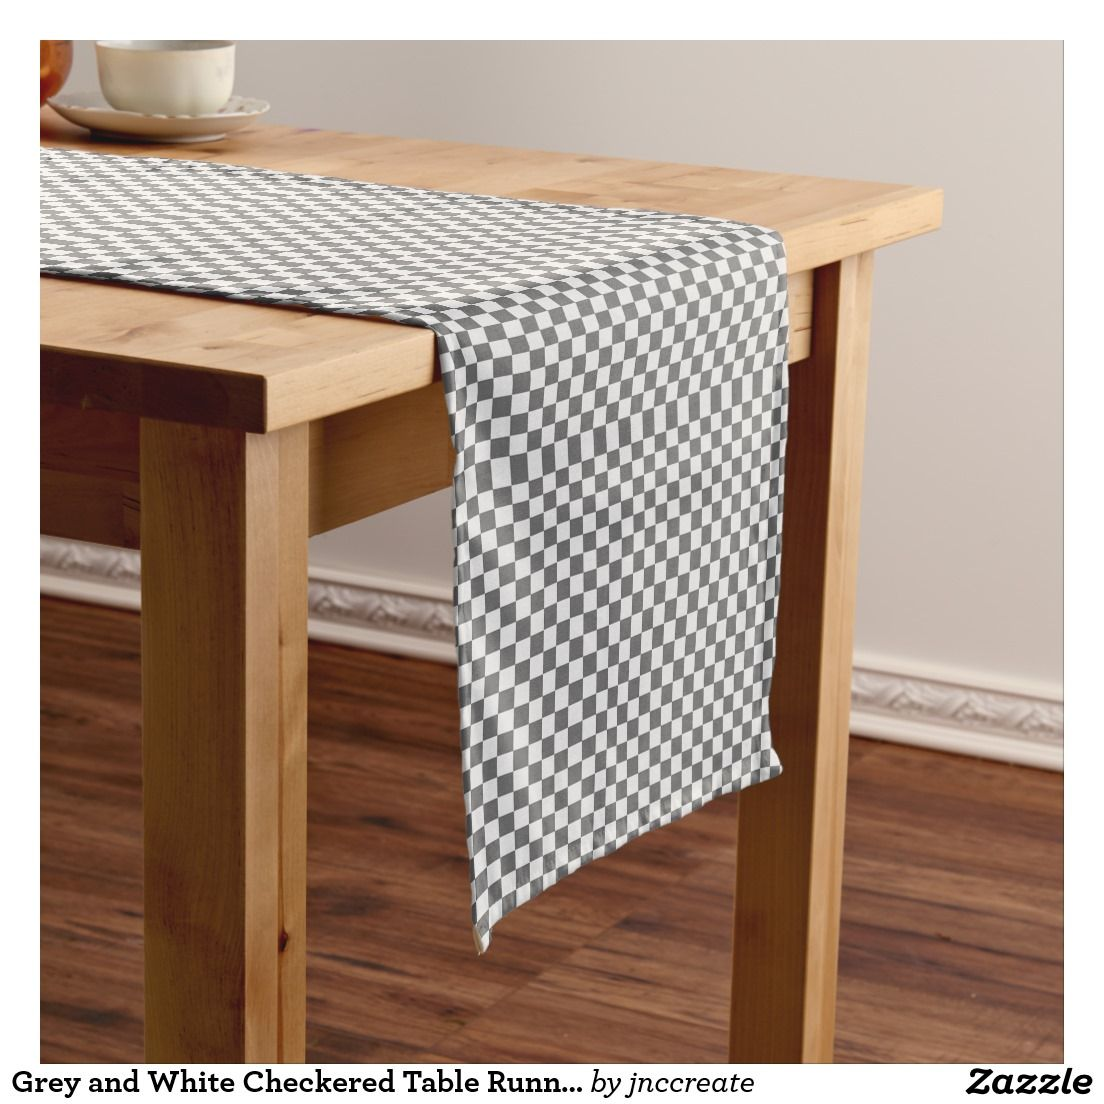 Grey and White Checkered Table Runner